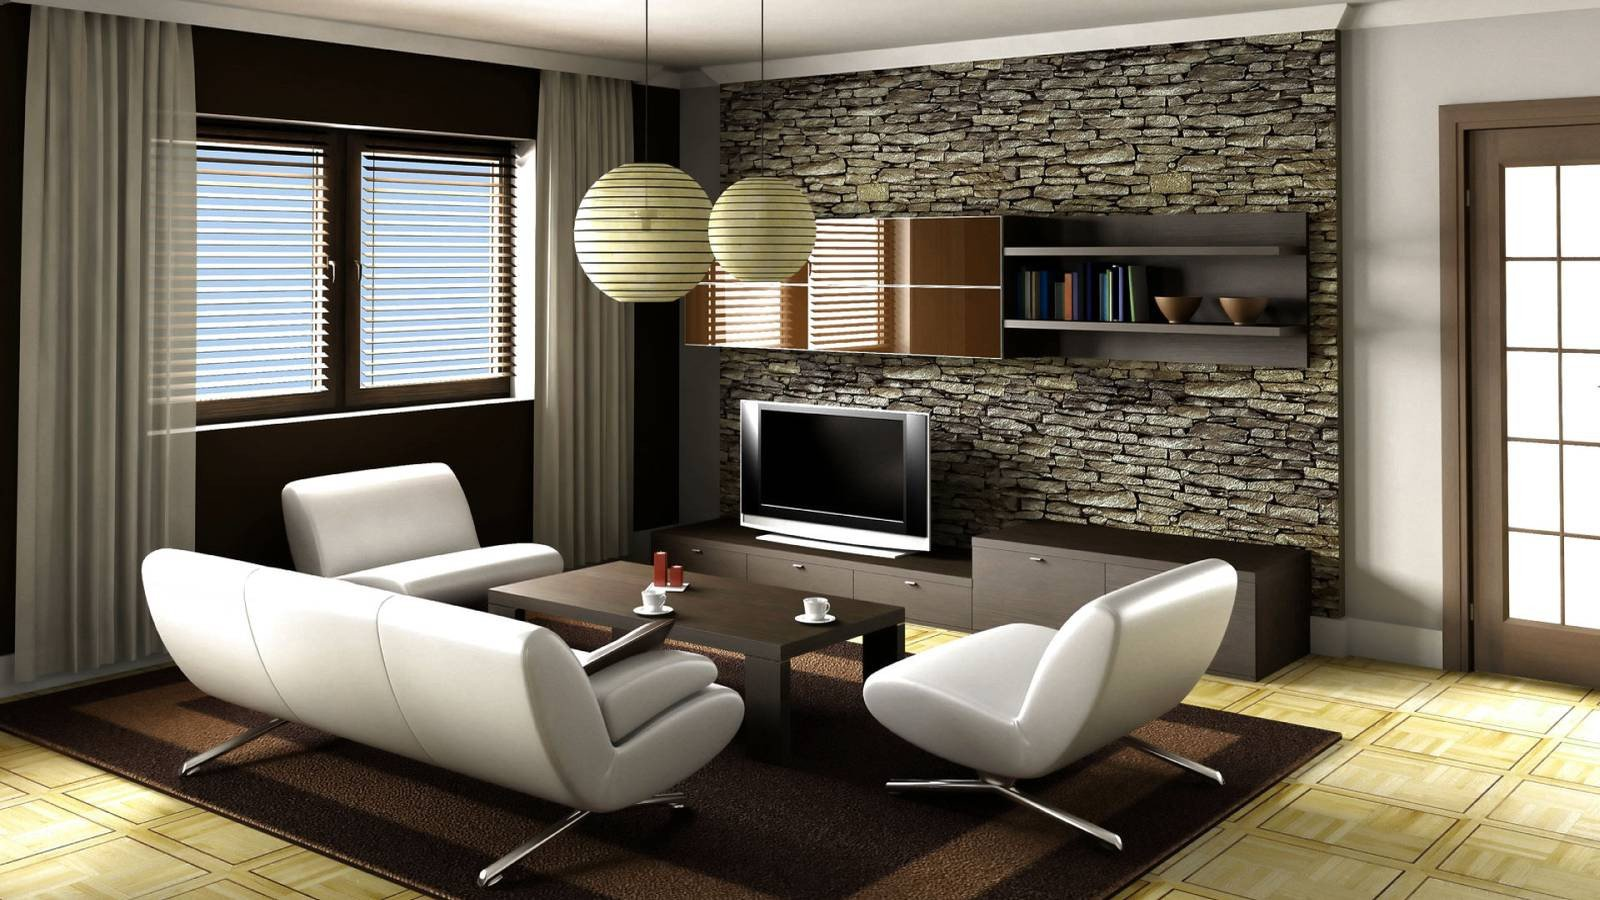 Cool Cheap Decorating Ideas Modern Living Room 17 Cool Modern Living Room Ideas for Different Home Types